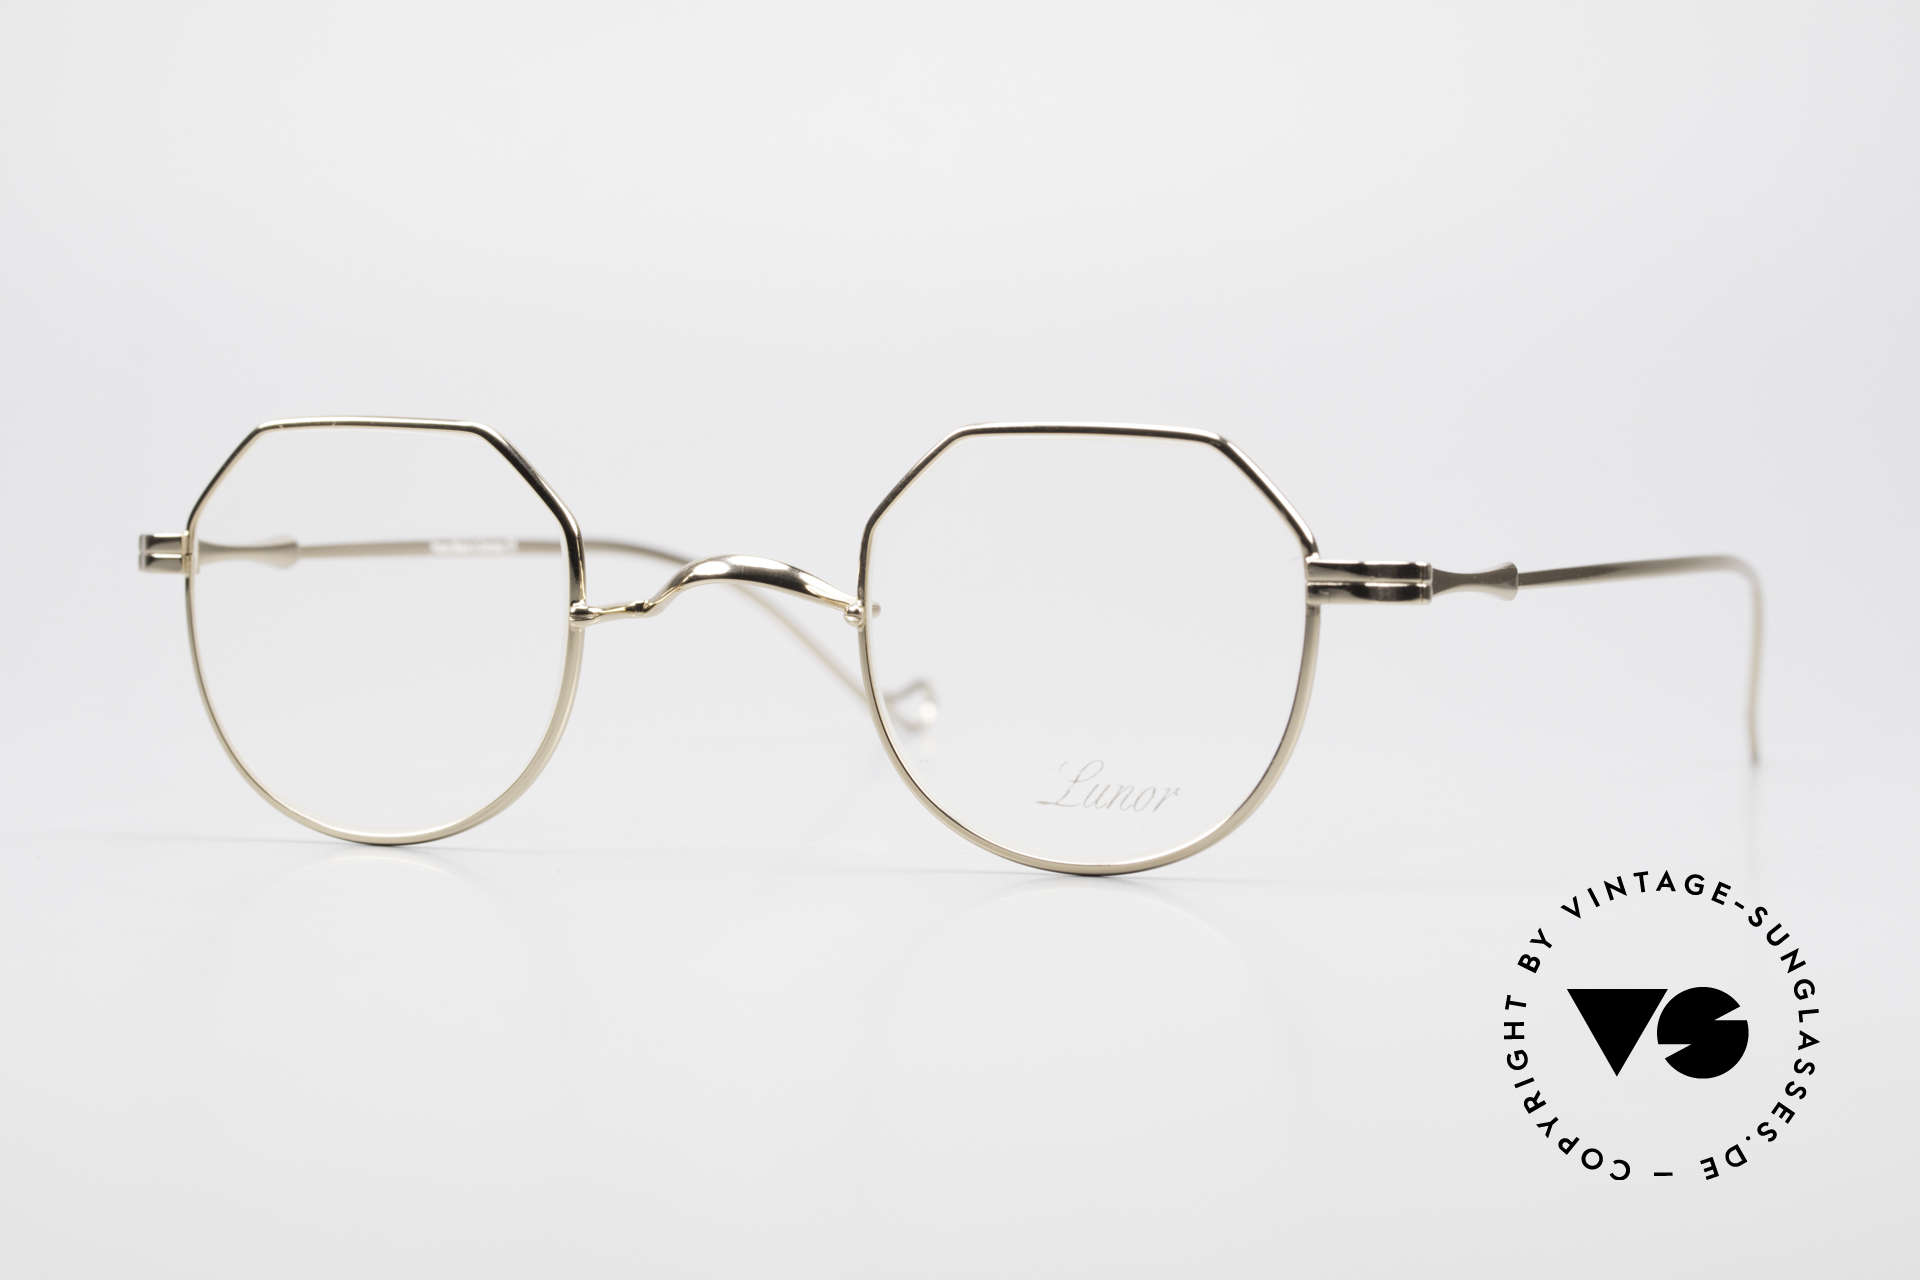 """Lunor II 18 Hybrid Panto Frame Gold Plated, Lunor: shortcut for French """"Lunette d'Or"""" (gold glasses), Made for Men and Women"""